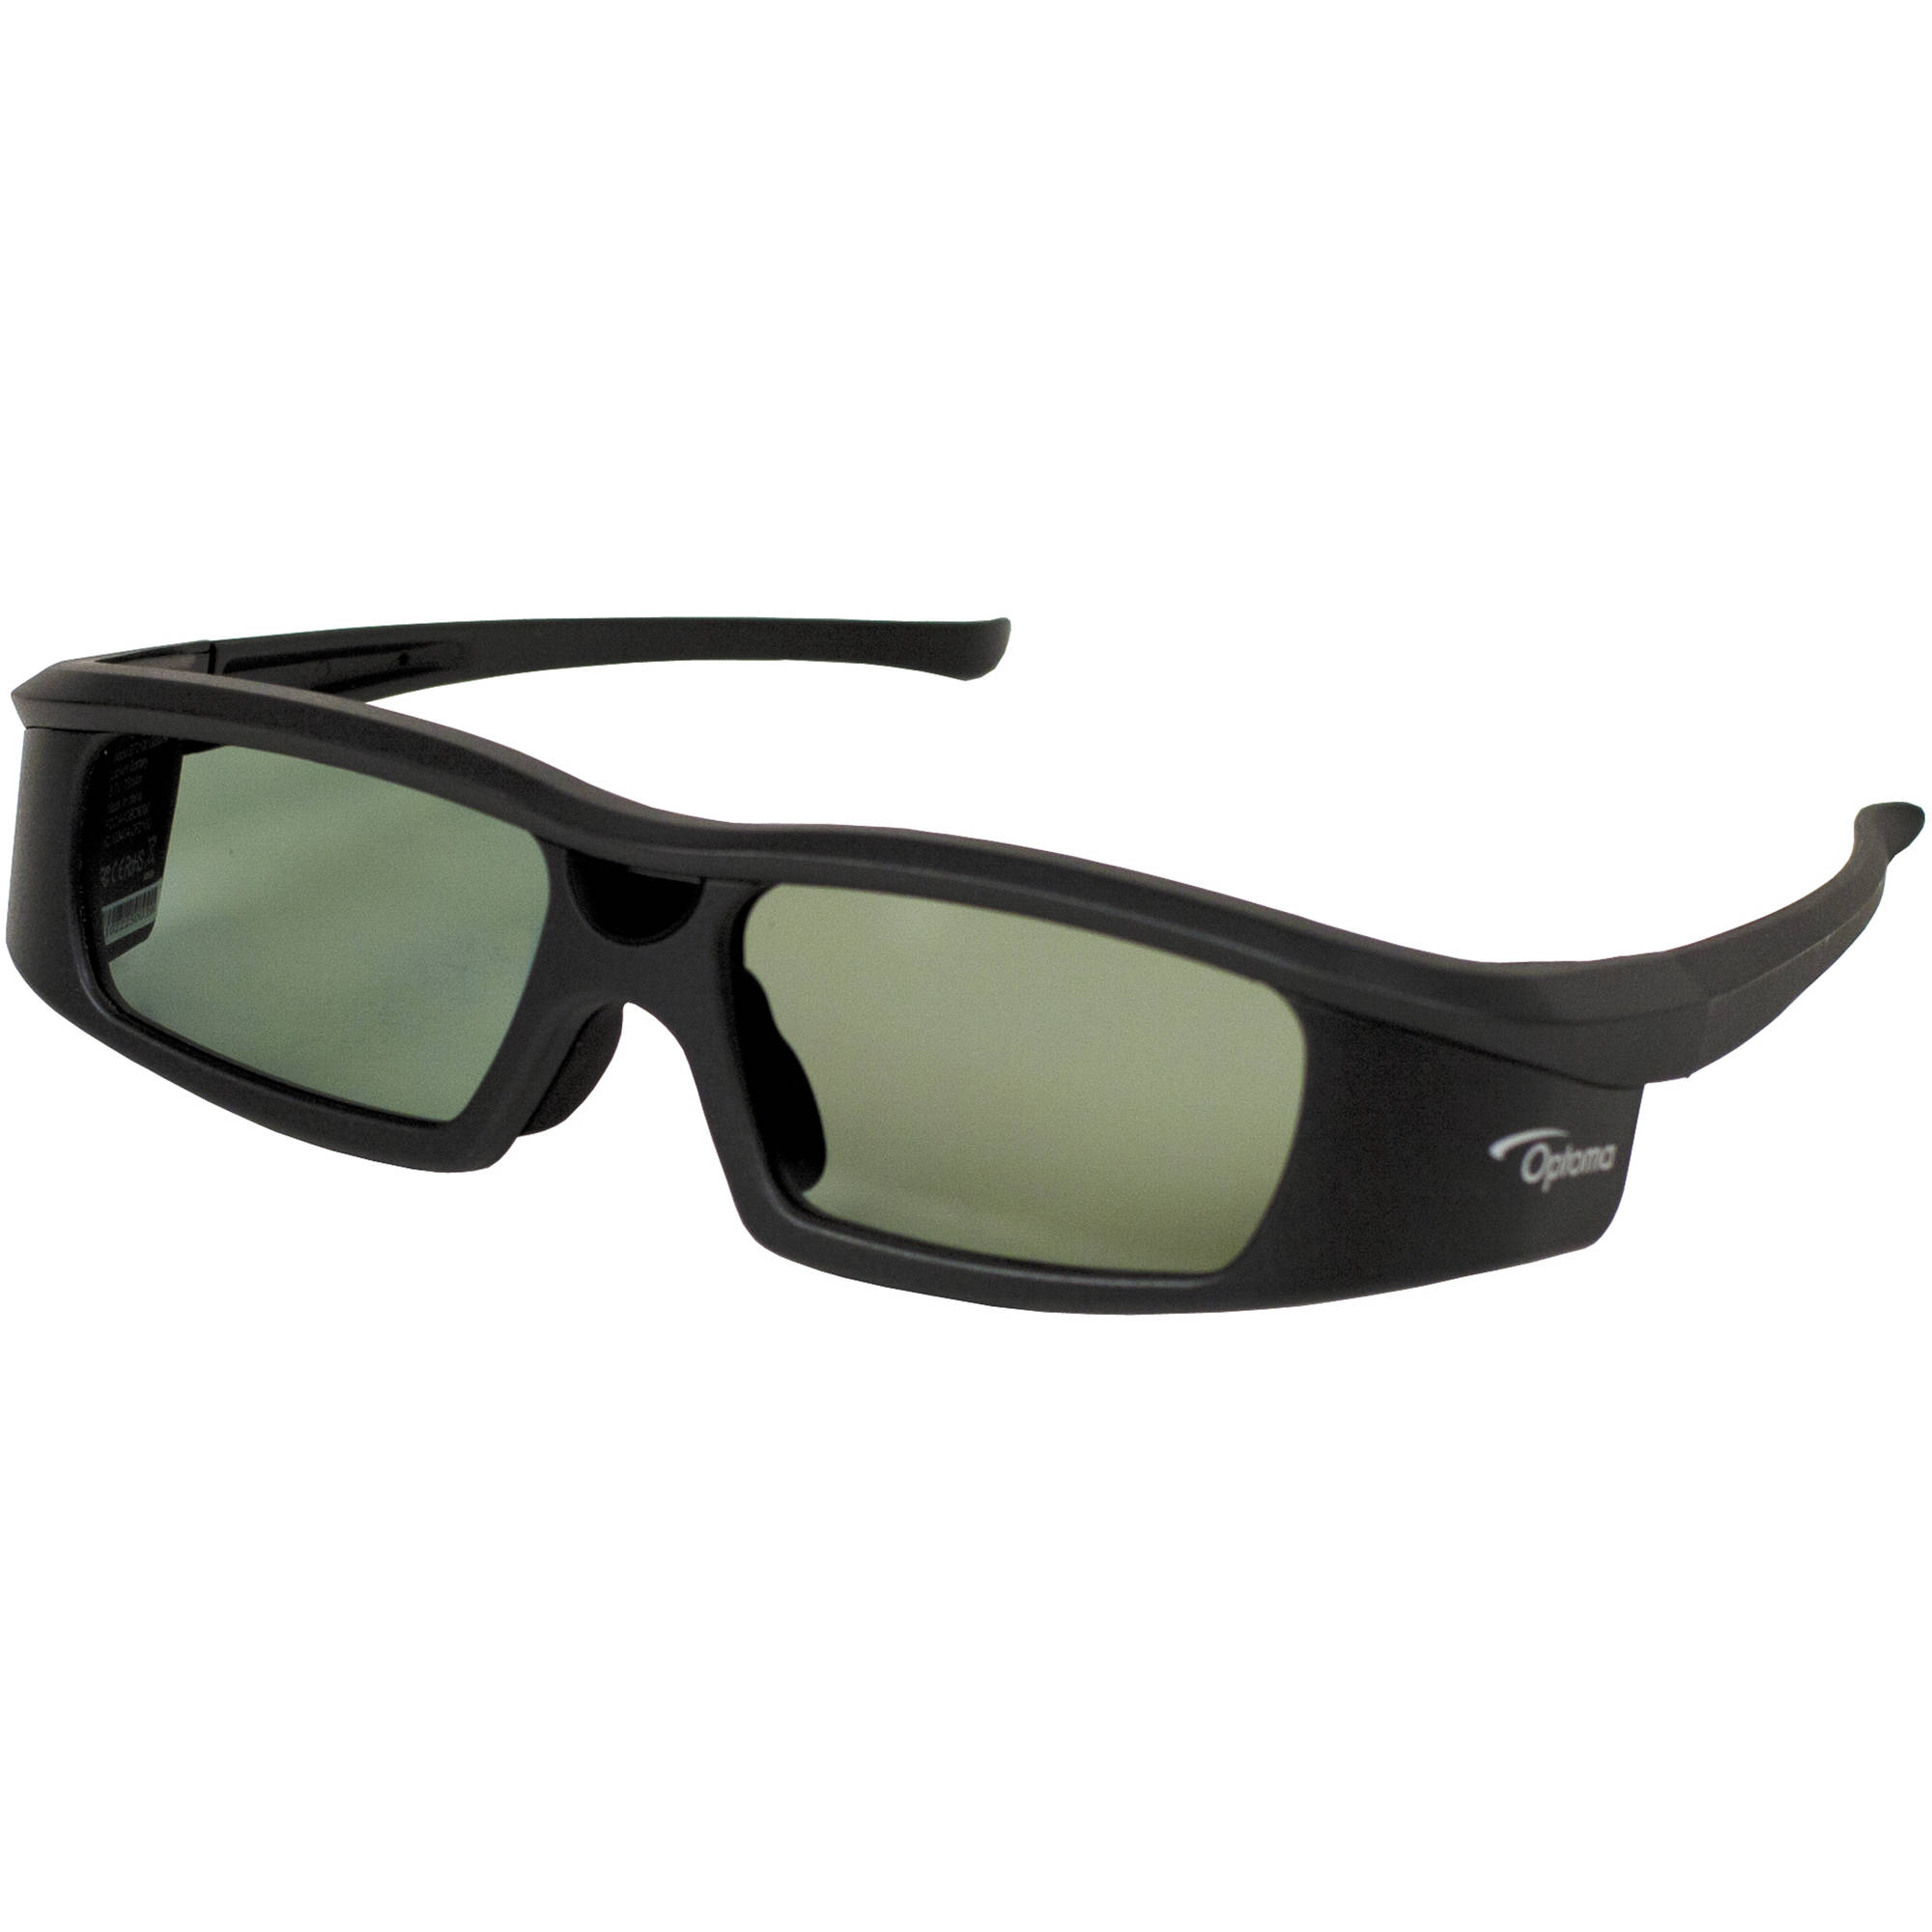 Optoma Technology Active Shutter 3D-RF Glasses BG